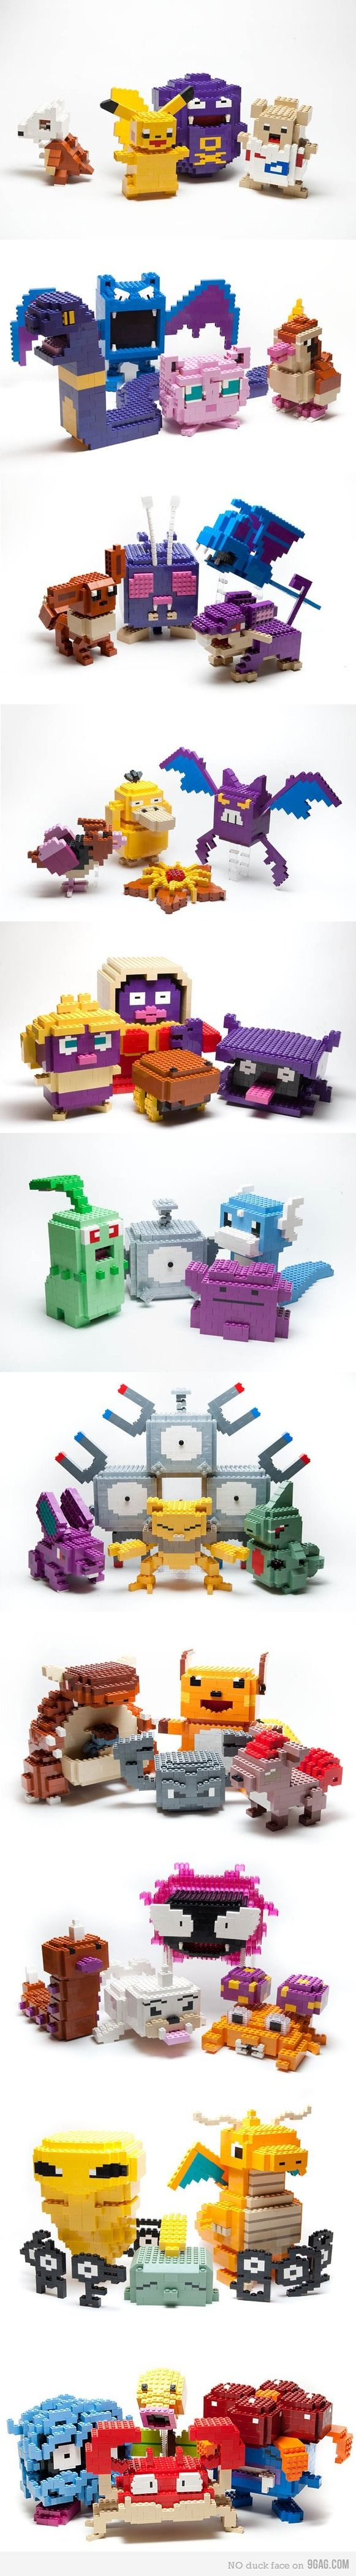 LEGO Pokemon :D awesome I love legos.